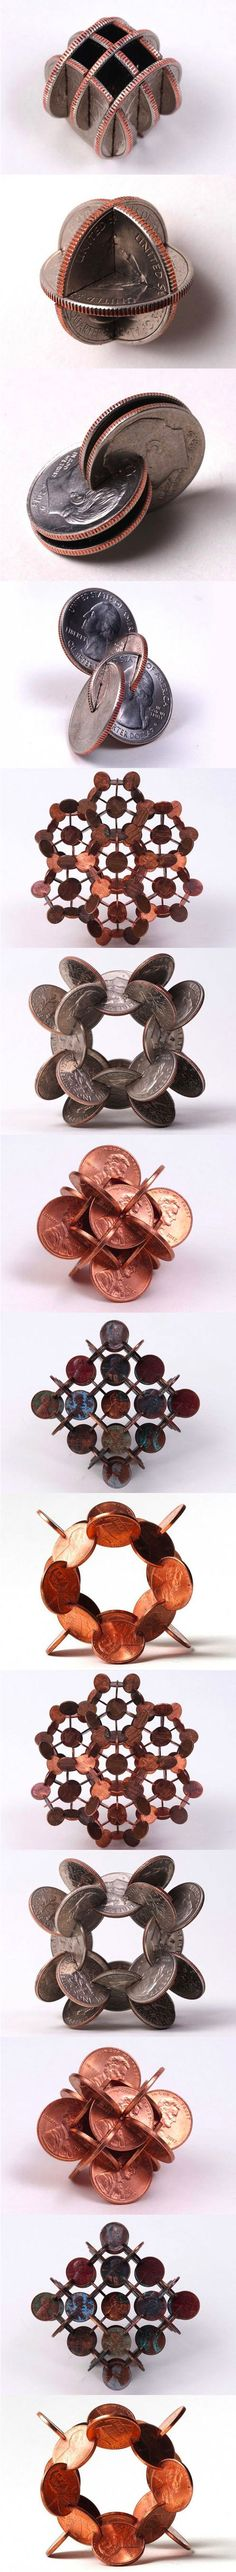 Art with coins.<<<<These are some priceless creations